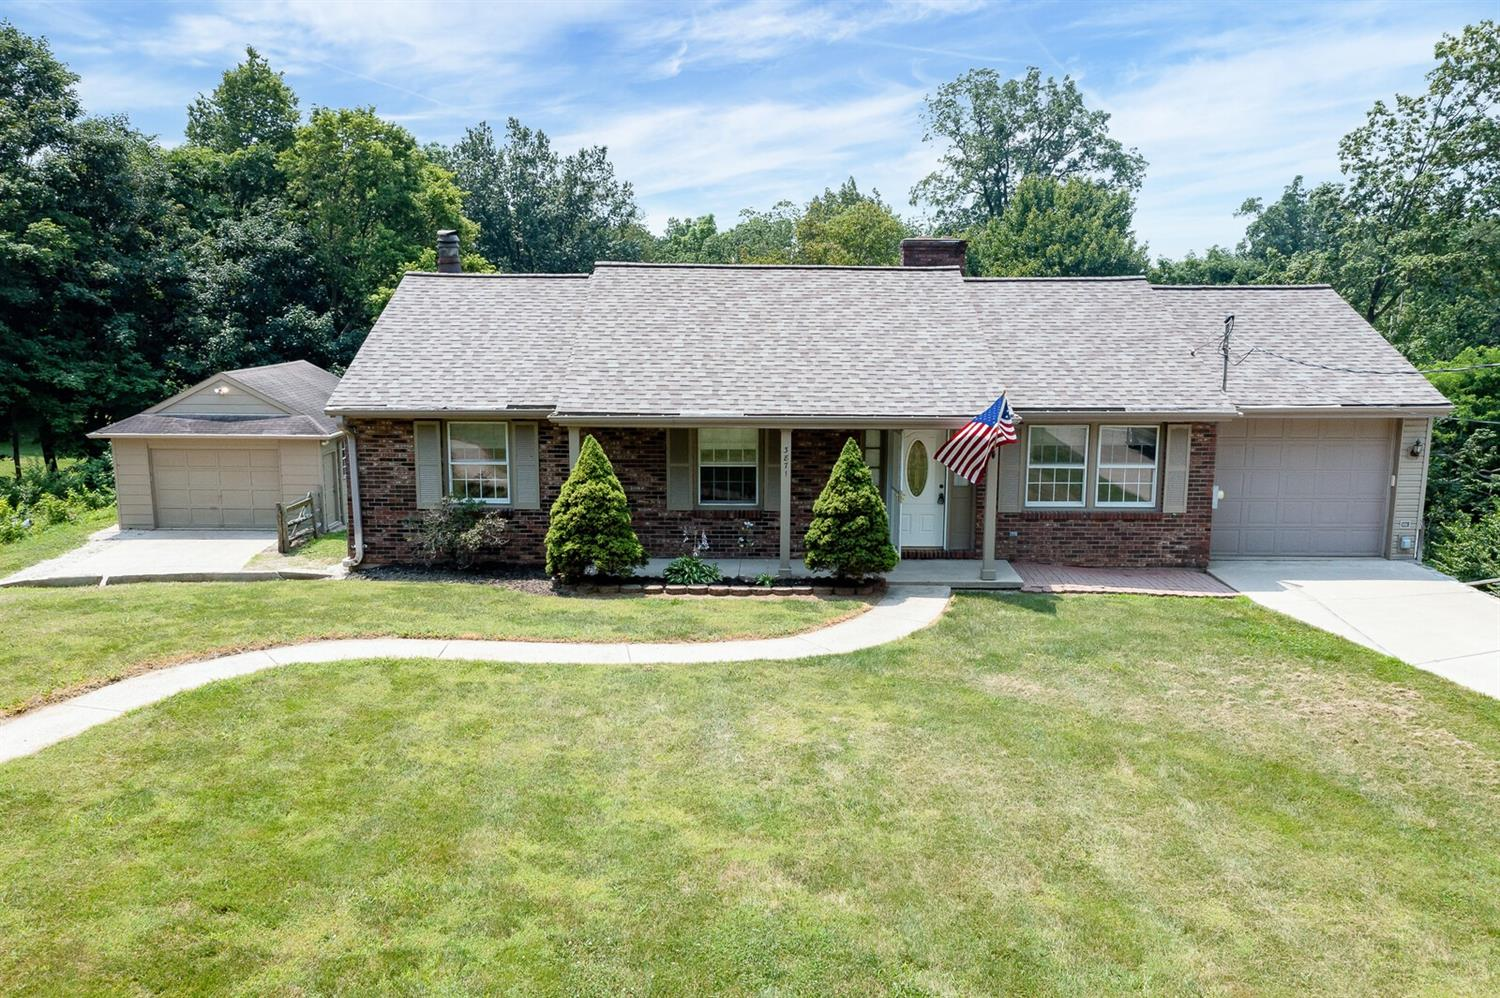 Photo 2 for 3871 Bunnell Road Union Twp. (Warren), OH 45036